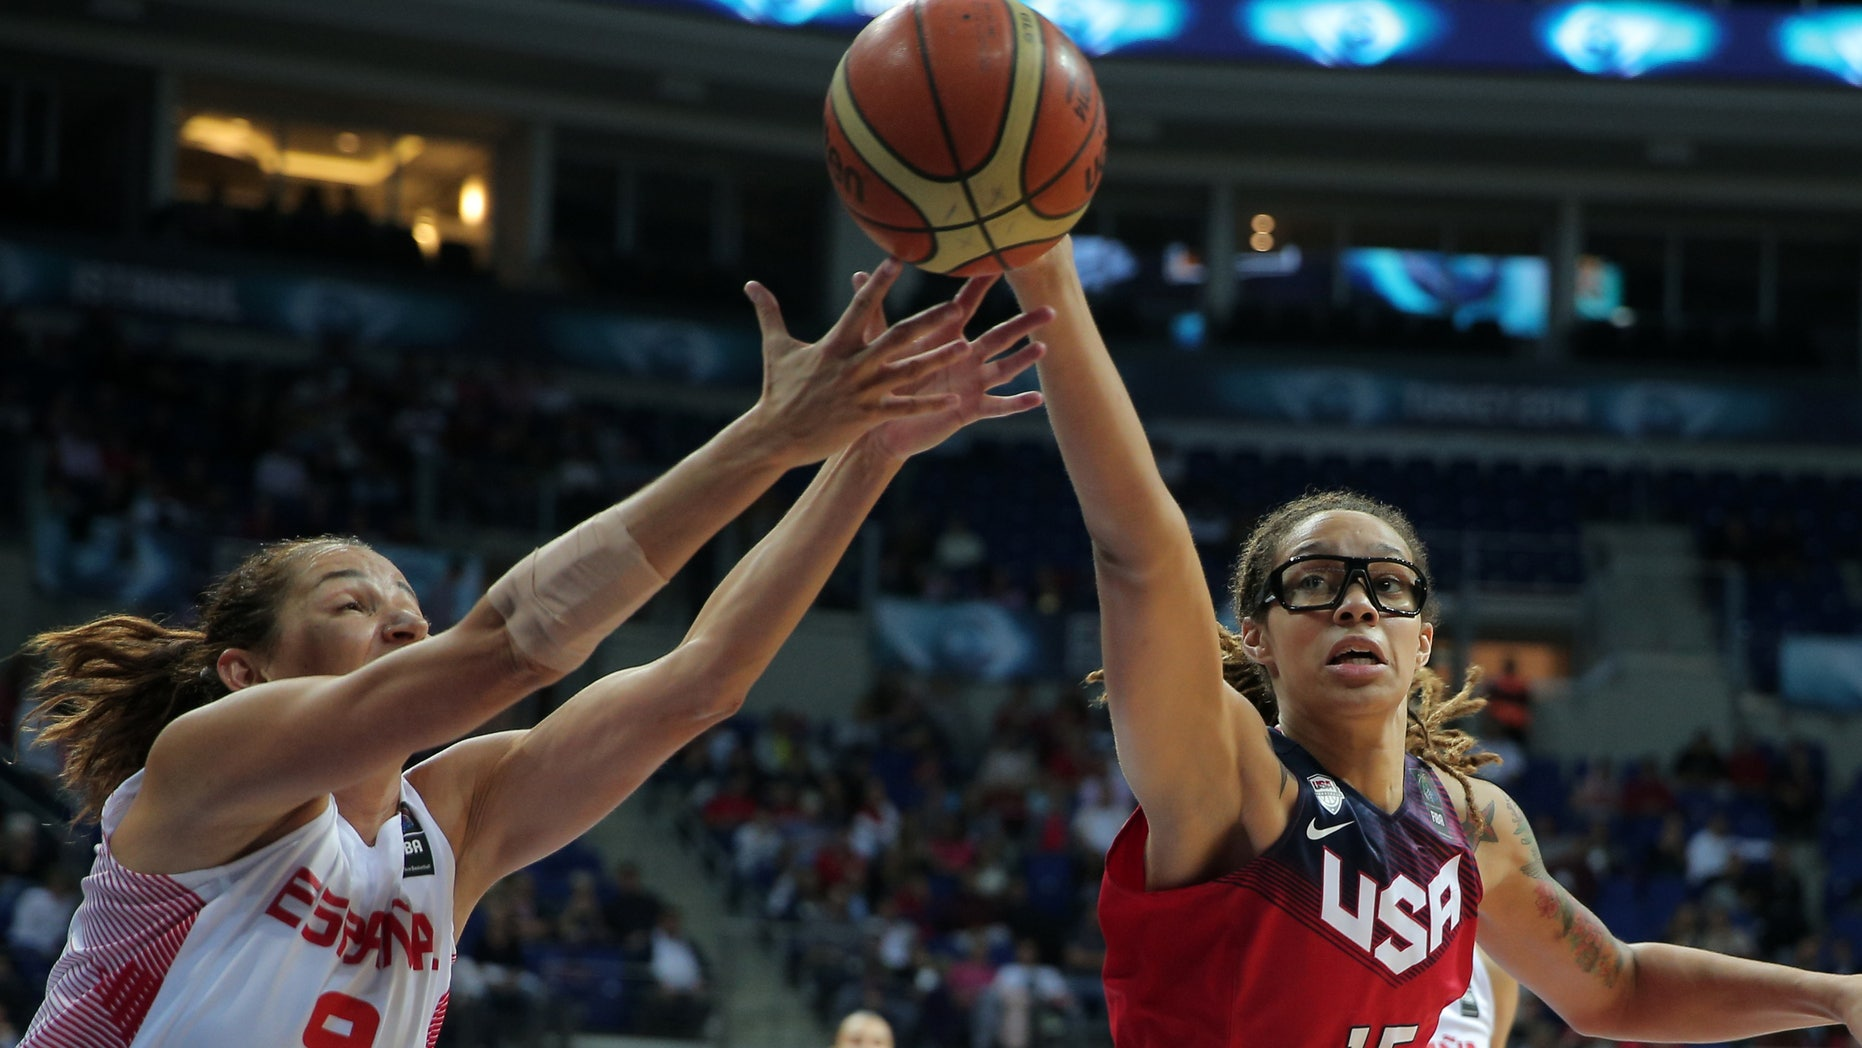 Oct. 5, 2014: Laia Palau, left, of Spain, and Brittney Griner of the US, fight for the ball during the Basketball World Championship for Women's final